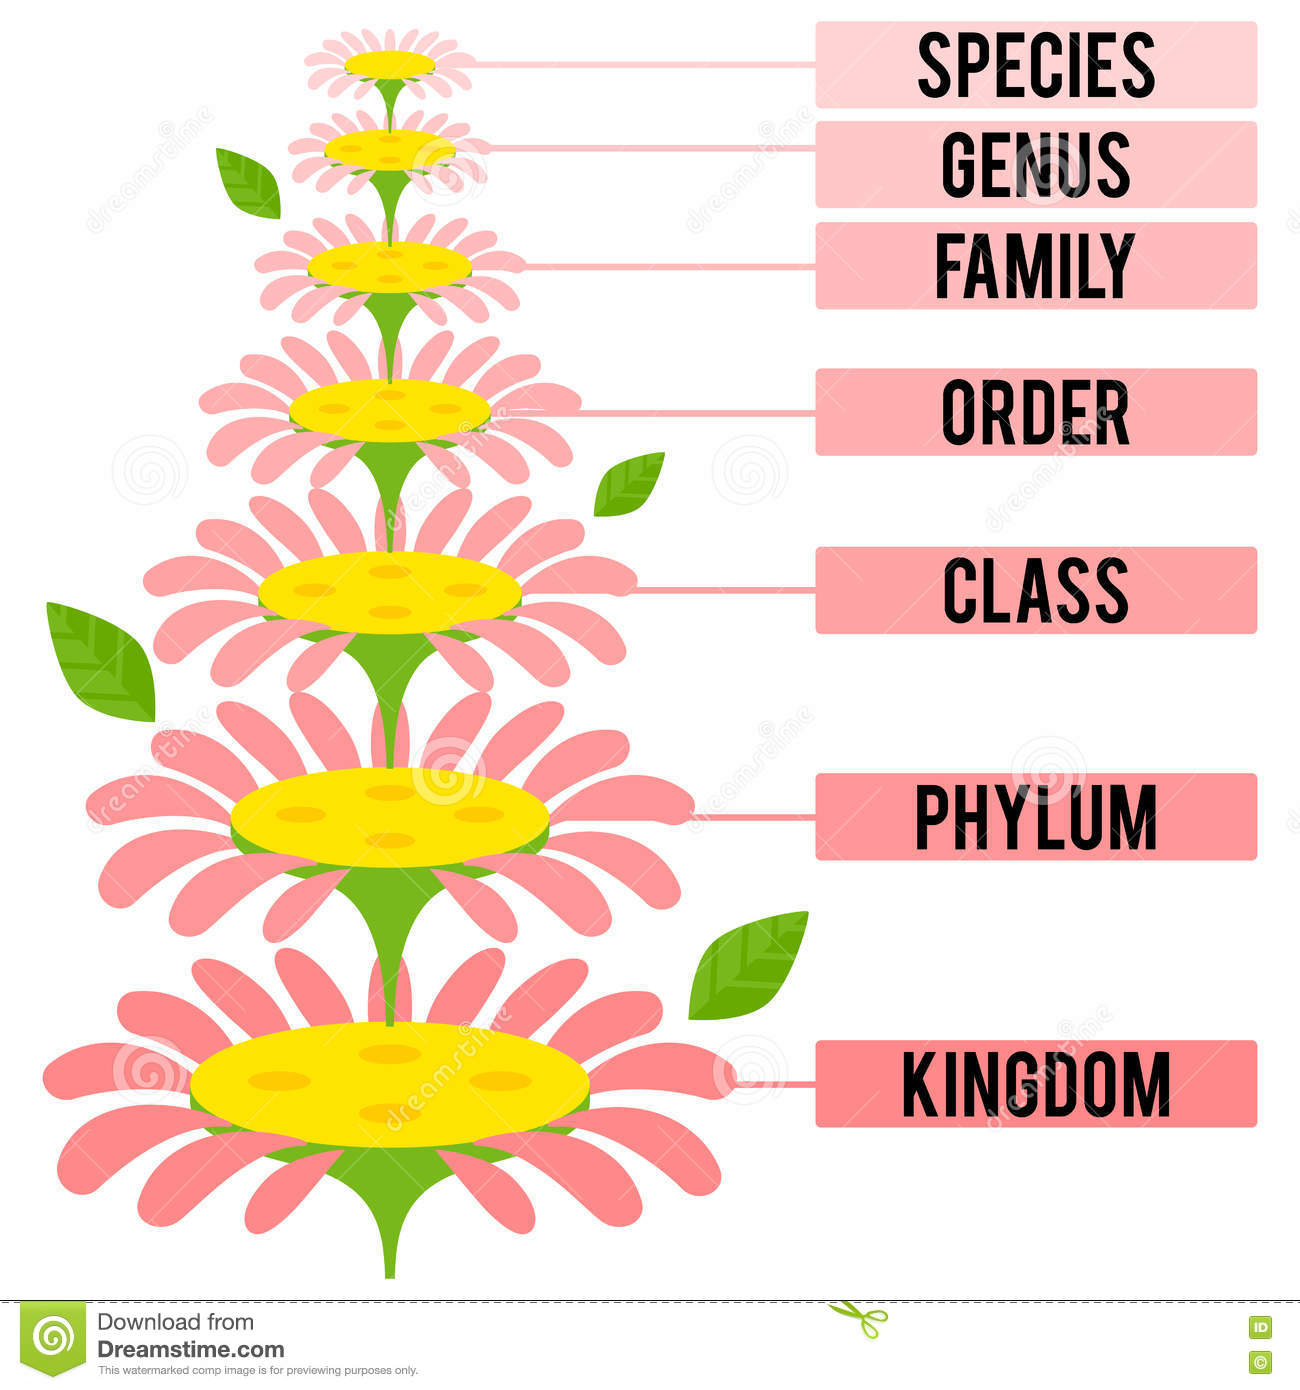 Vector Illustration With Major Taxonomic Ranks Of The